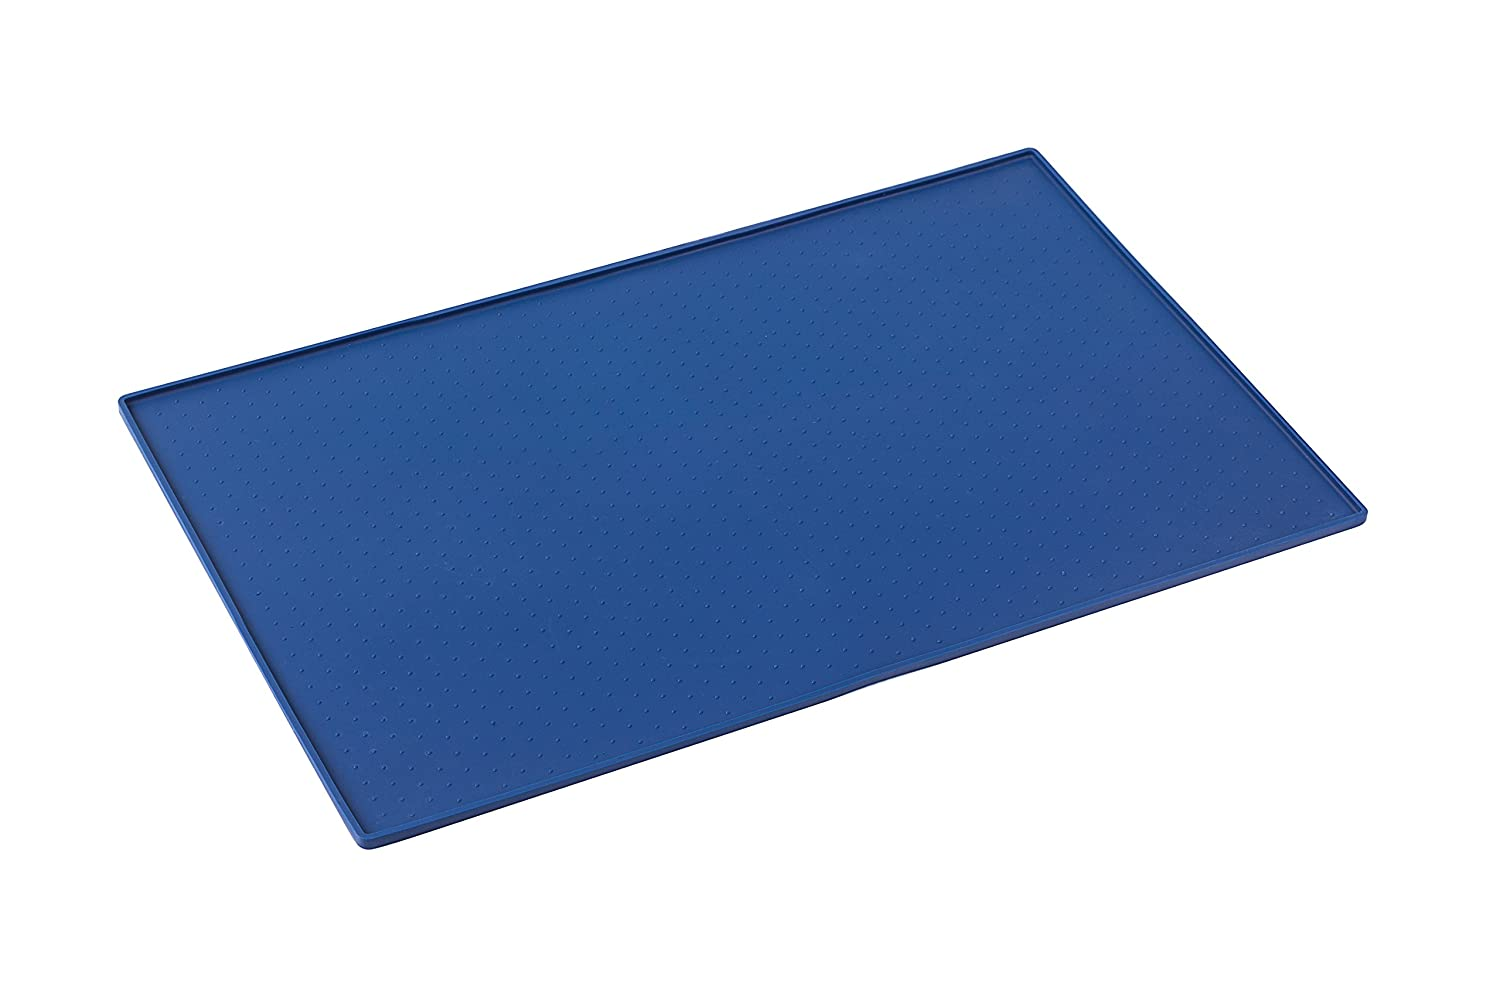 Snug Pet Feeding Mat for Dog and Cat In Premium Food Grade Silicone - XL Size 24 x 16 (Blue) SGPFMBLXL